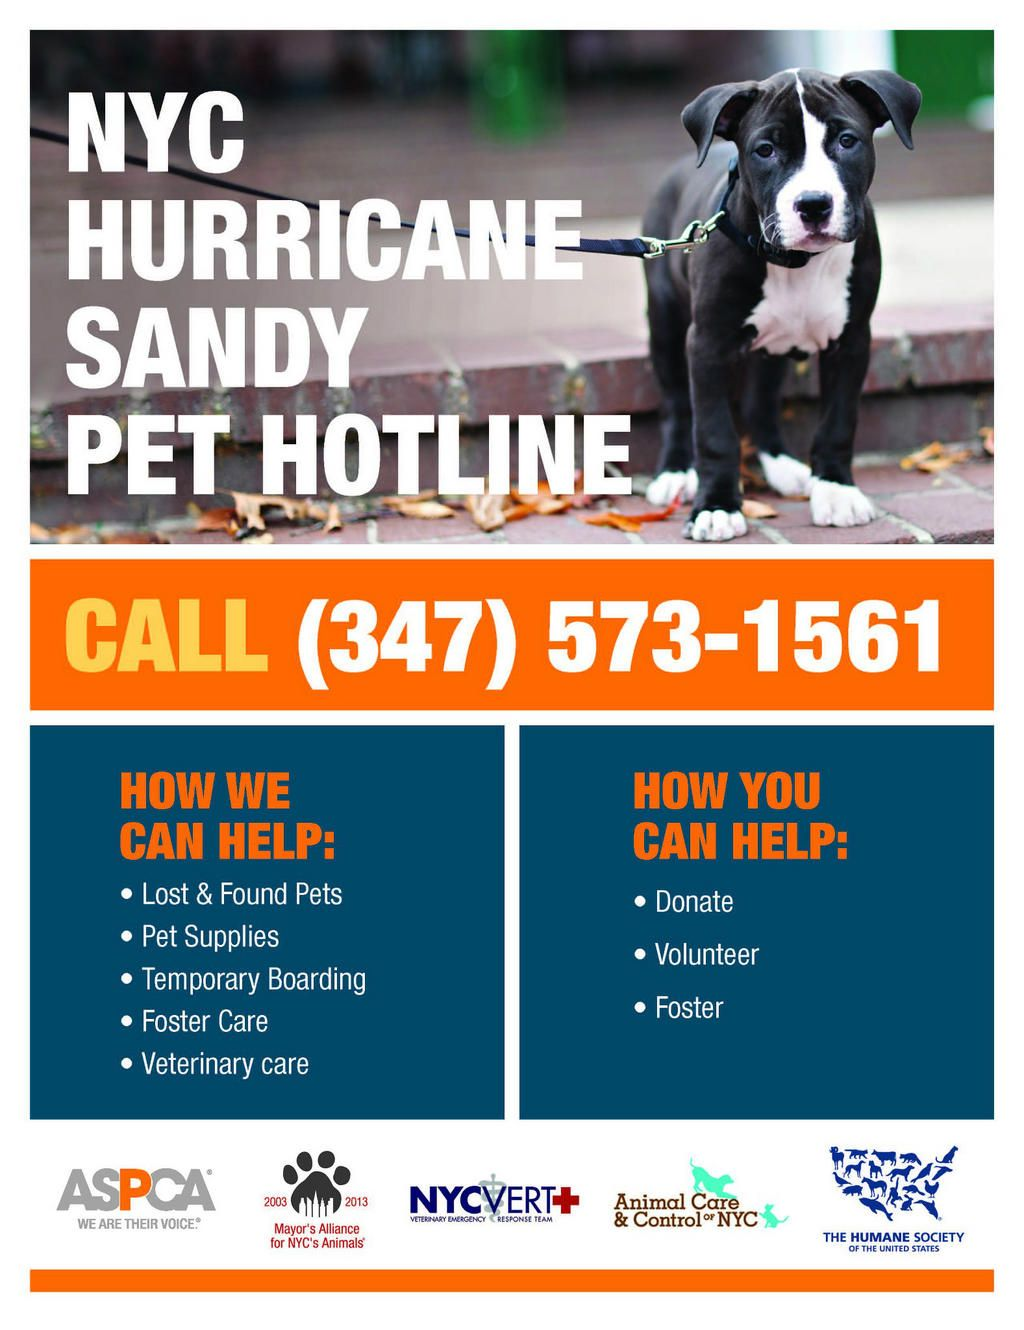 NYCLASS on Hurricane sandy, Veterinary care, Find pets